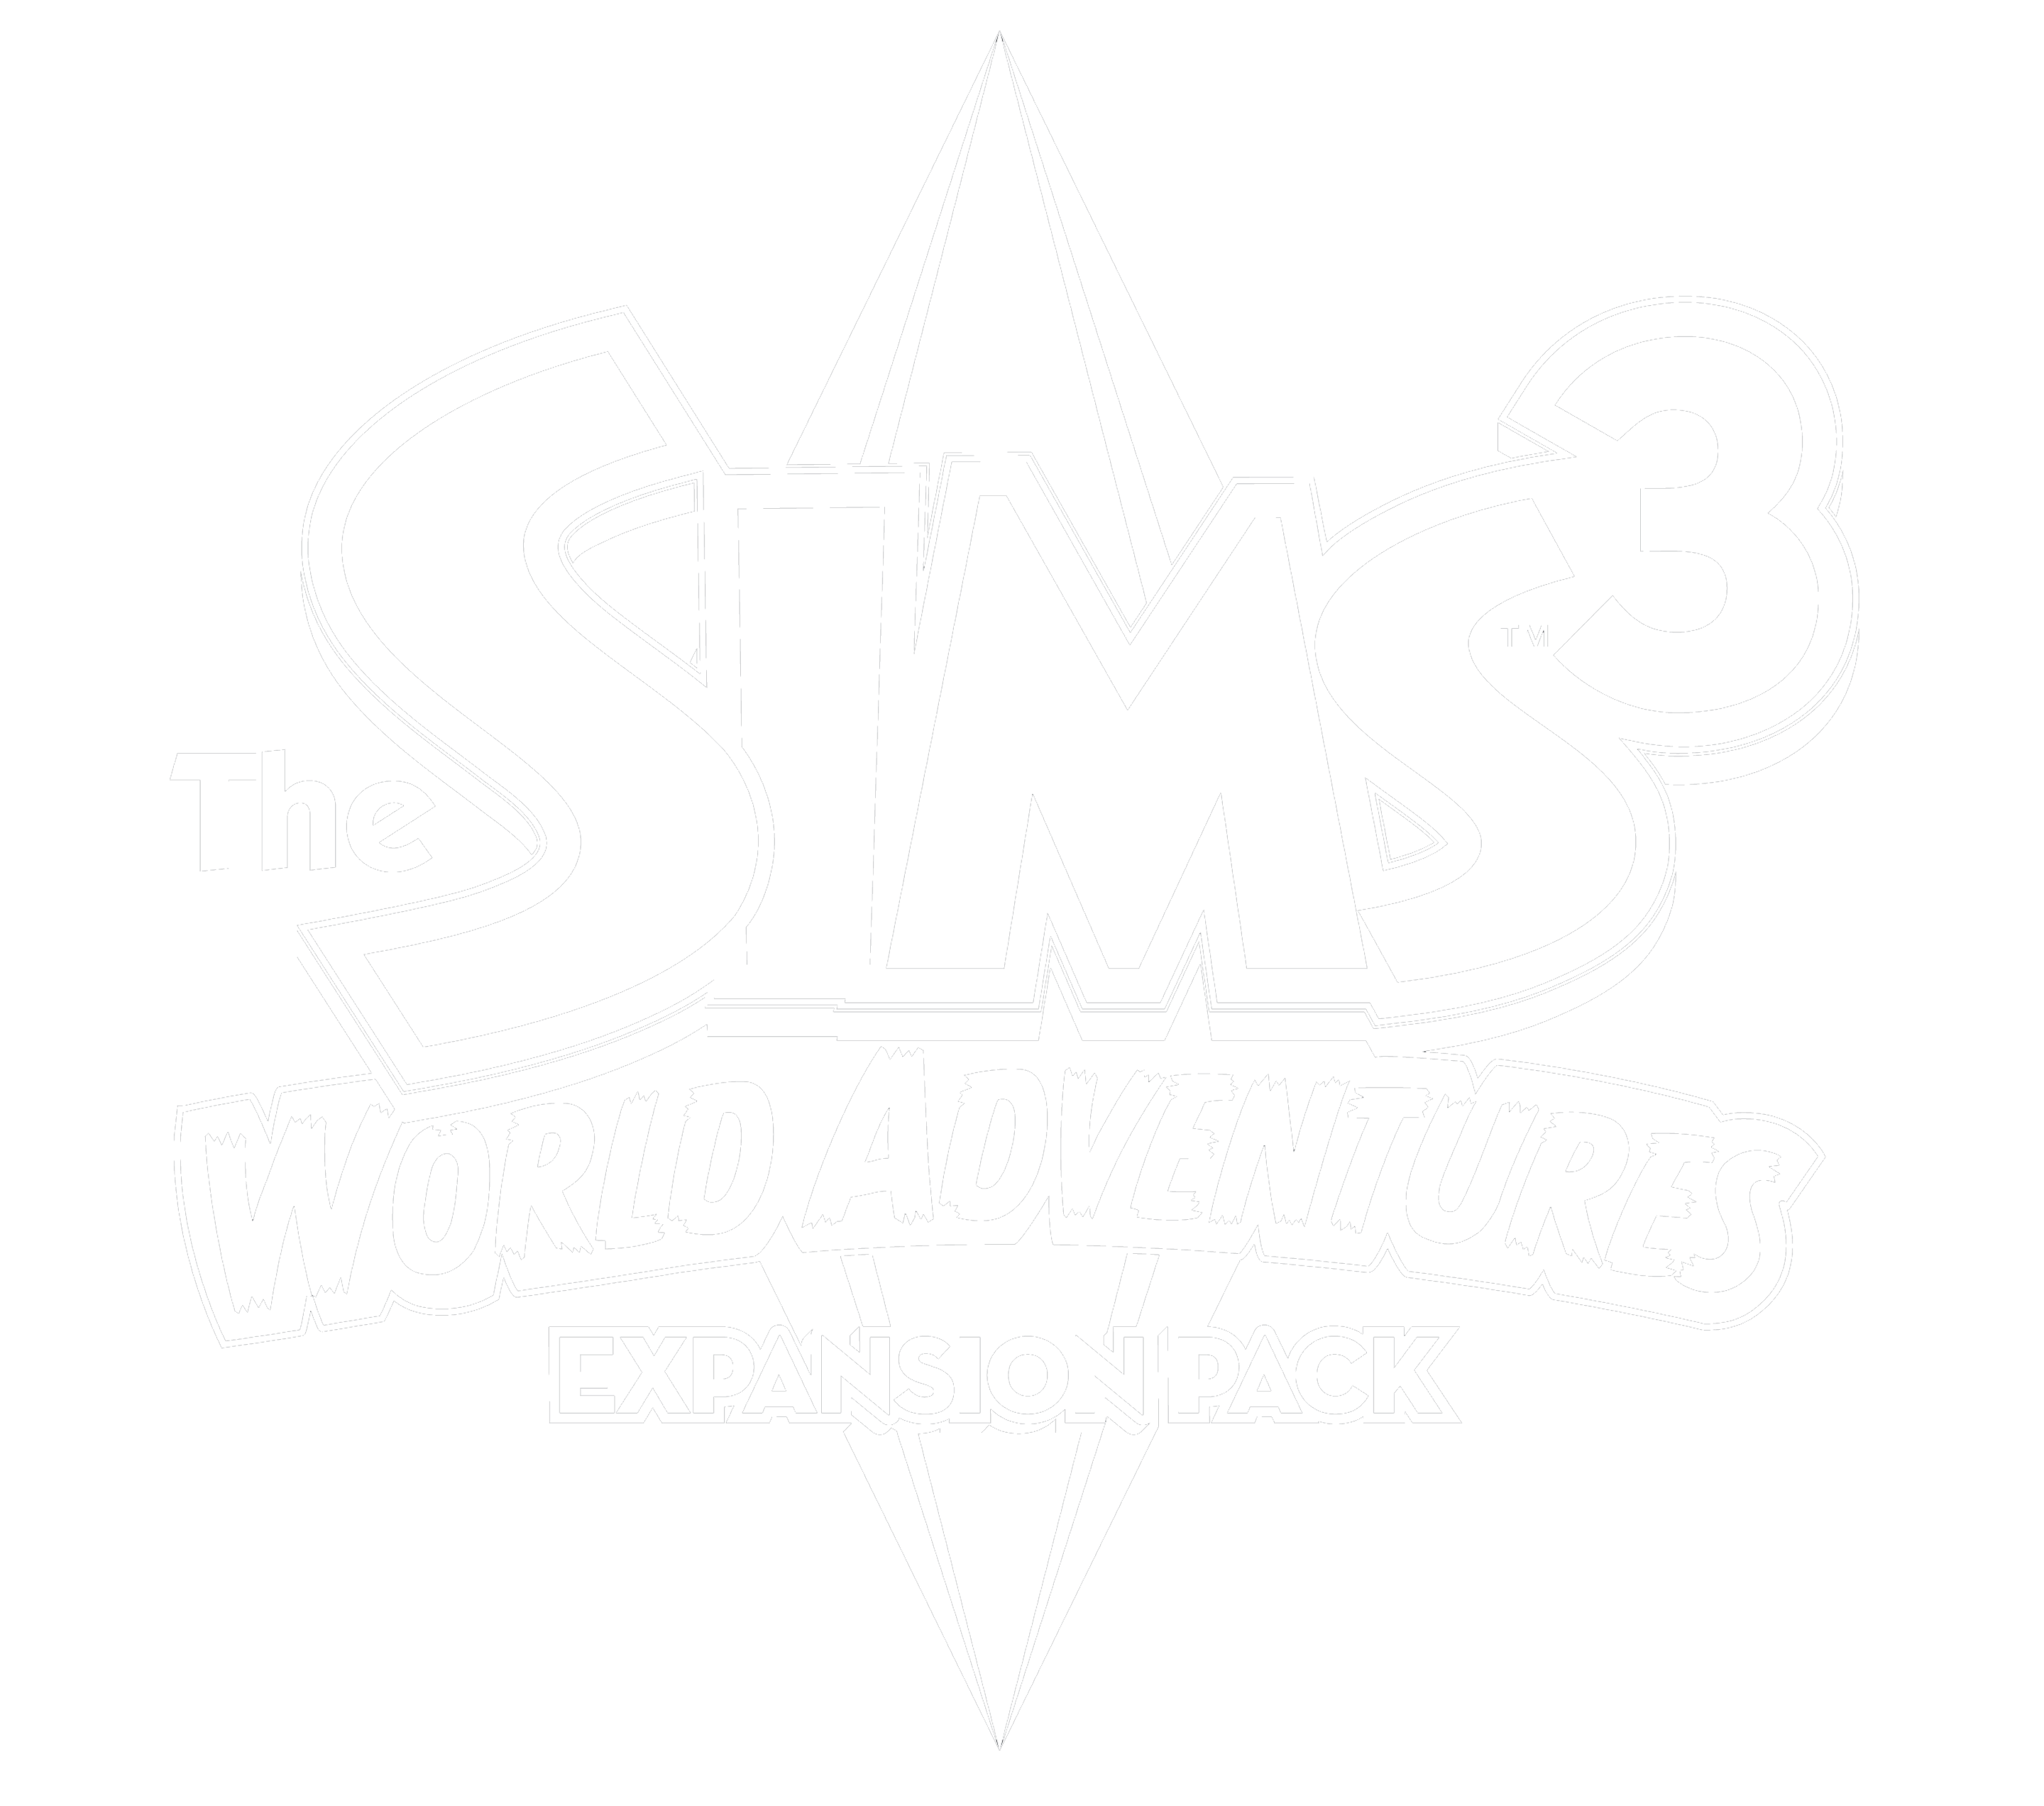 The Sims 3™ World Adventures Expansion Pack